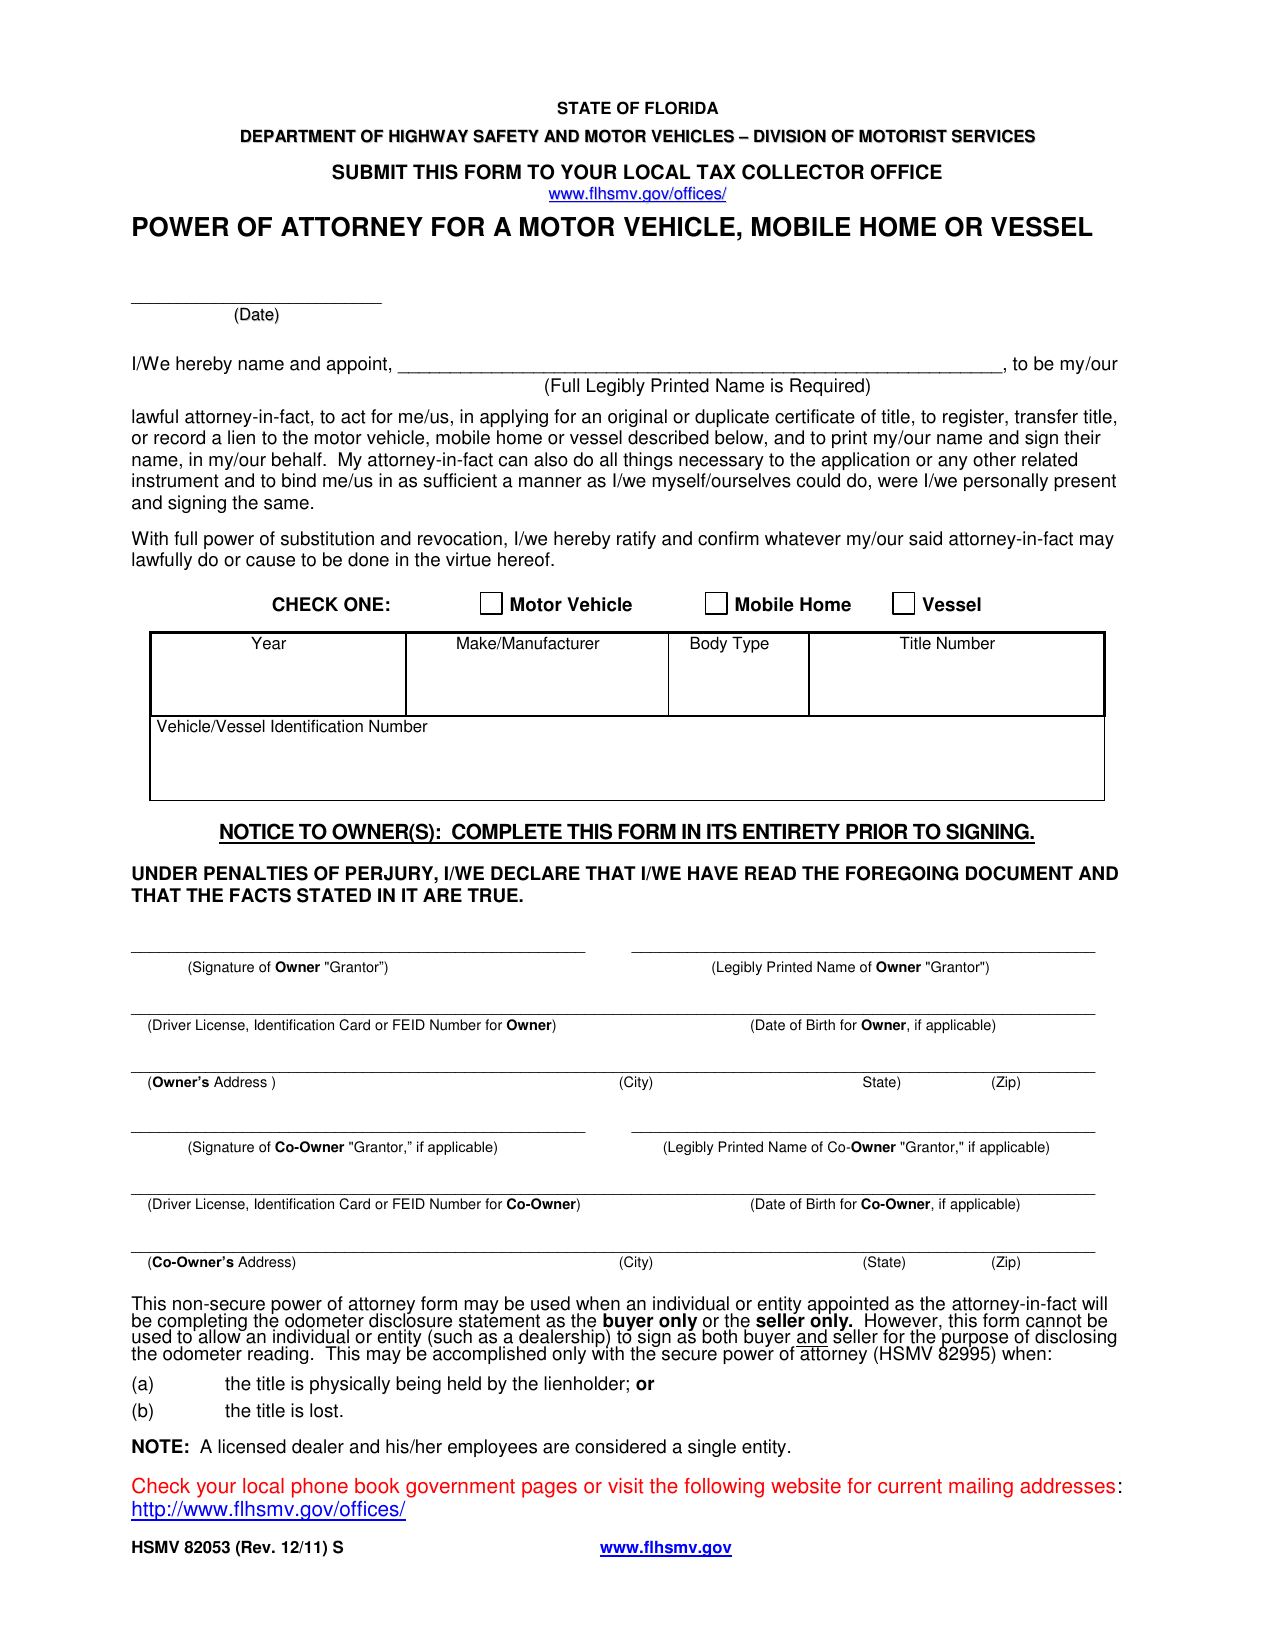 florida-vehicle-power-of-attorney-form-HSMV-82053.pdf Vehicle Expense Report Form on vehicle inventory report, vehicle damage report, vehicle incident report, vehicle accident report,